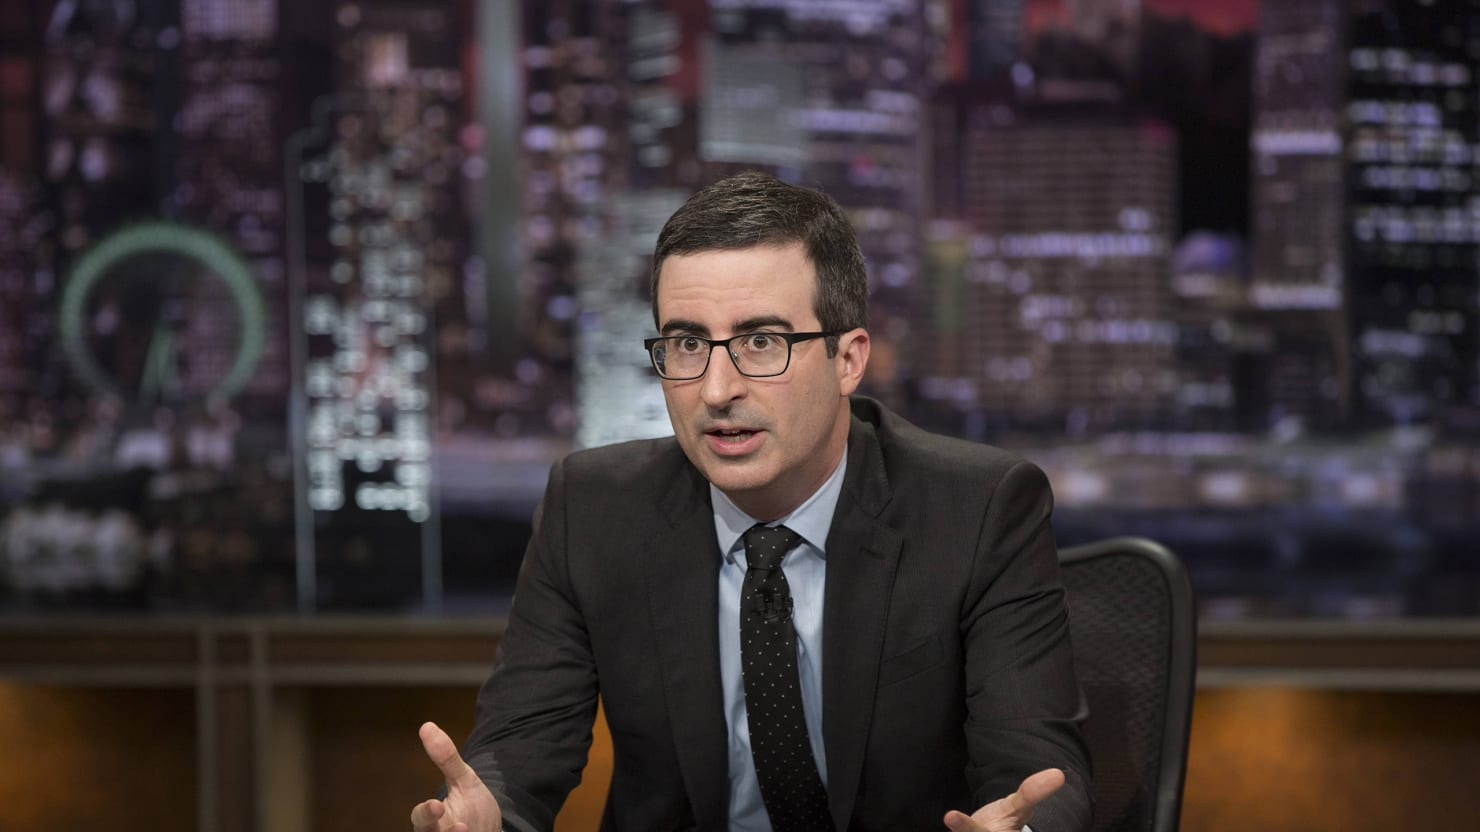 John Oliver Slams Toyota Over Isis Trucks Toyotas Are Being Used As Instruments Of Death